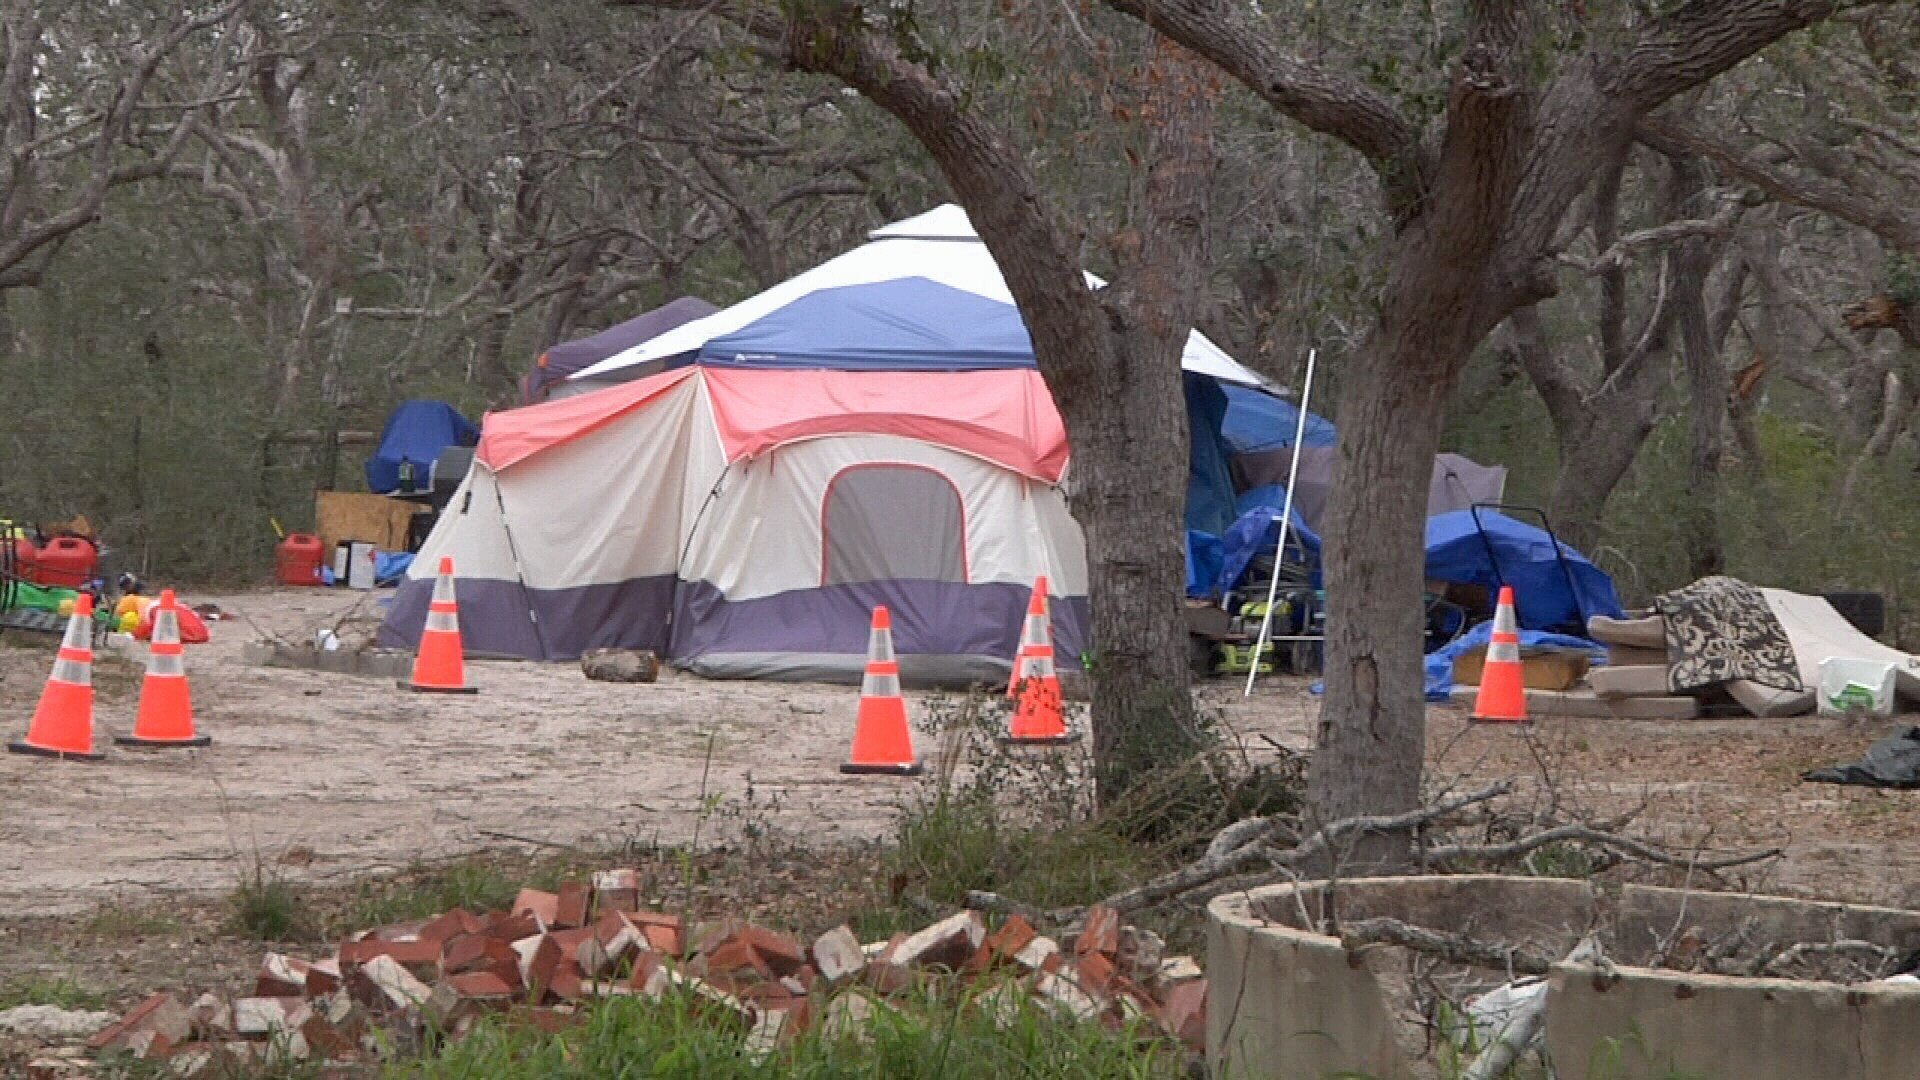 At Rockport Relief Camp displaced storm victims have moved out of tents and into RVs, but many other people displaced by Harvey remain in tents around the Coastal Bend.